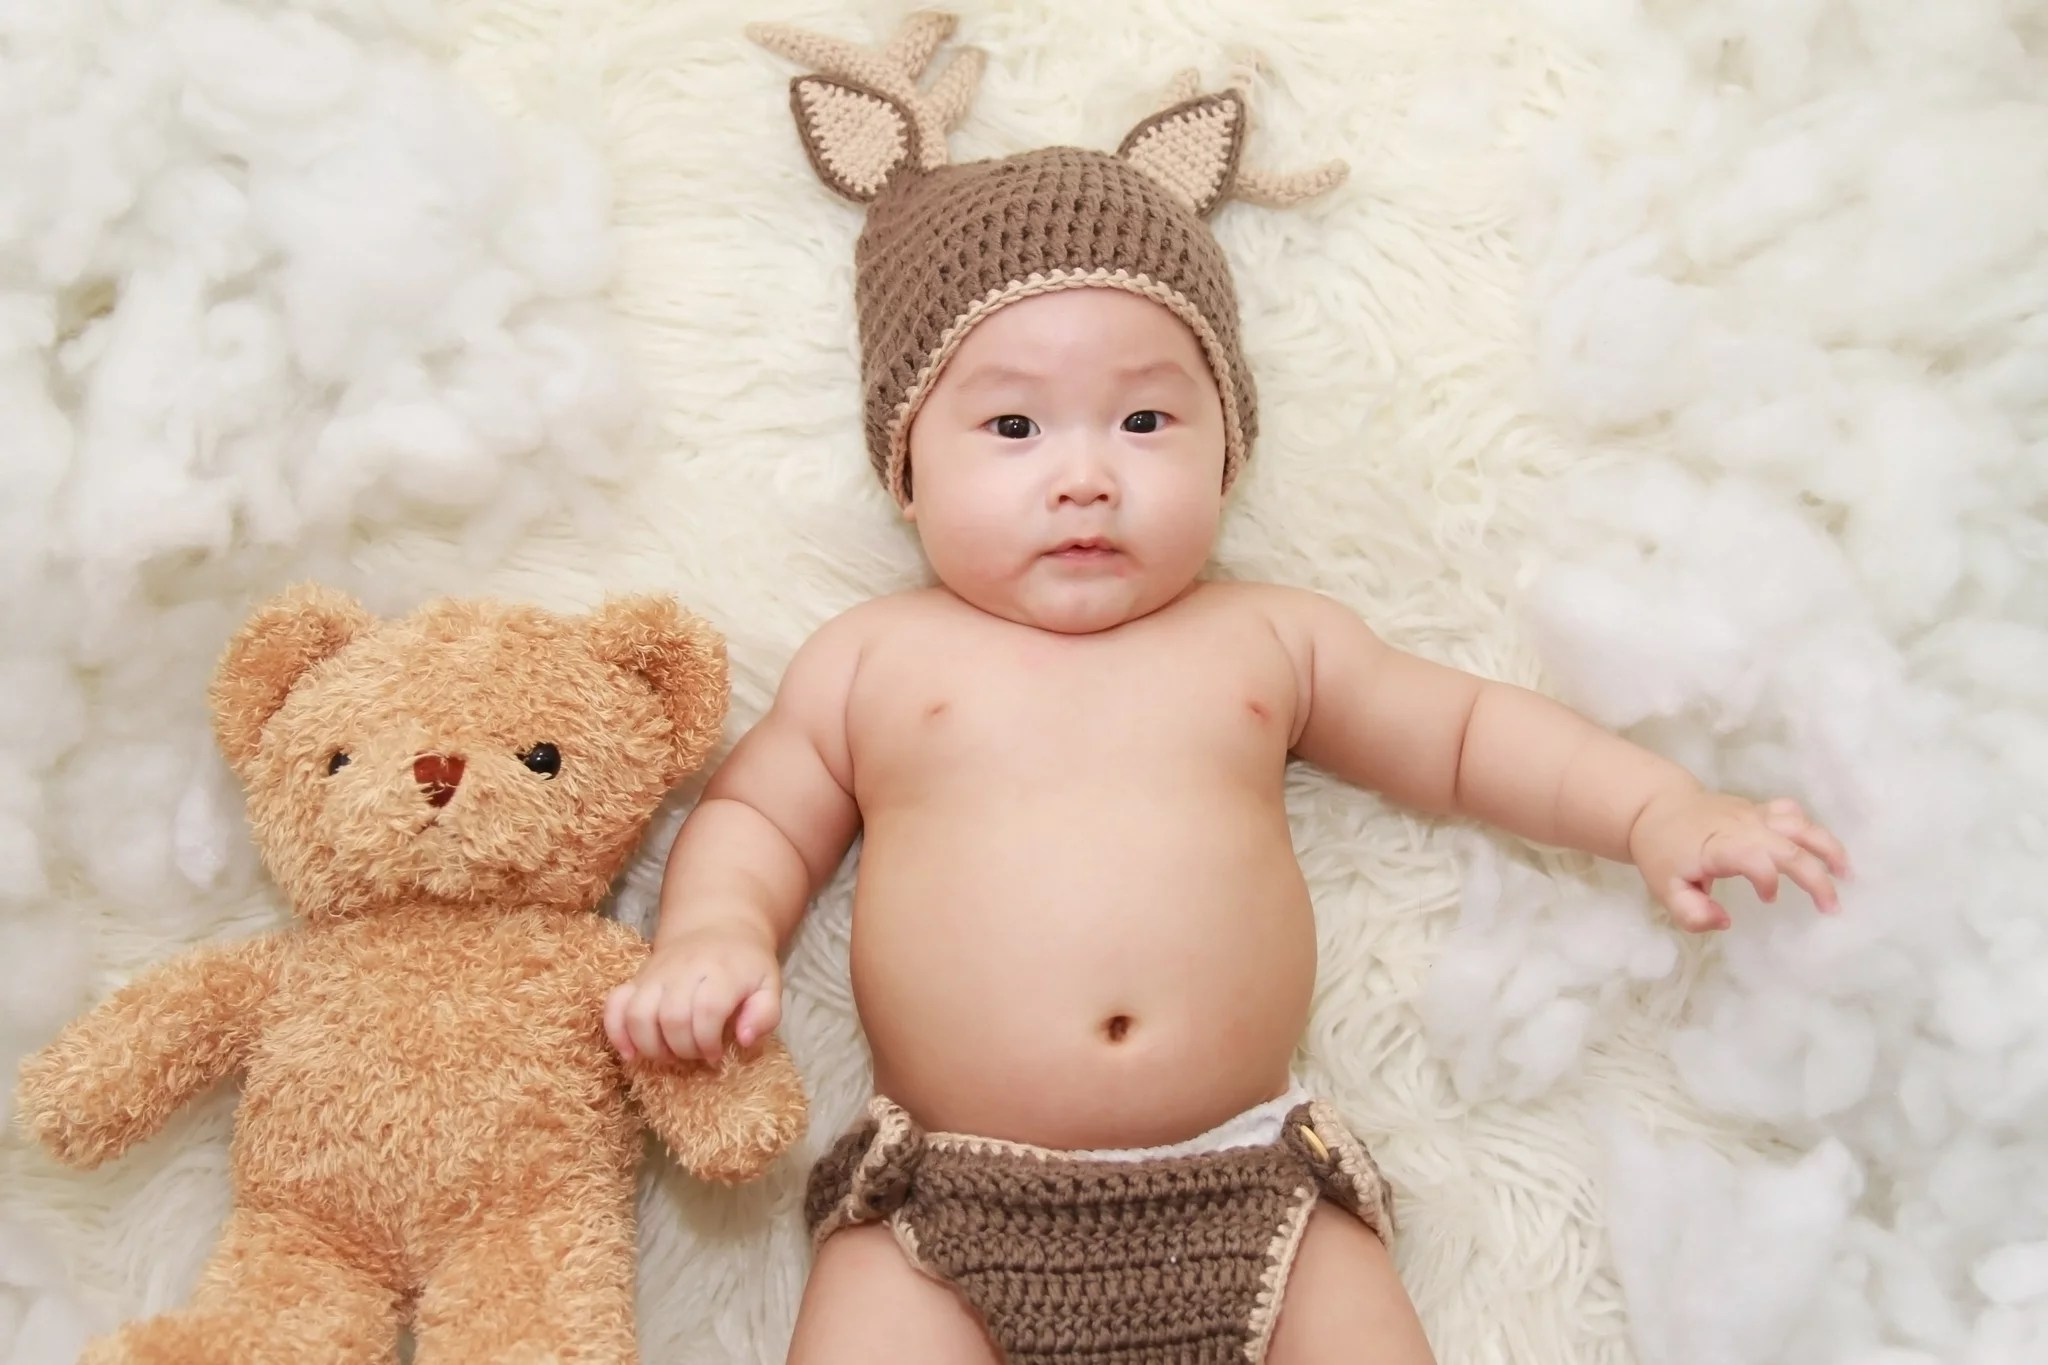 Newborn Toys Babycenter How Much Does A Baby Cost The First Year Popsugar Family